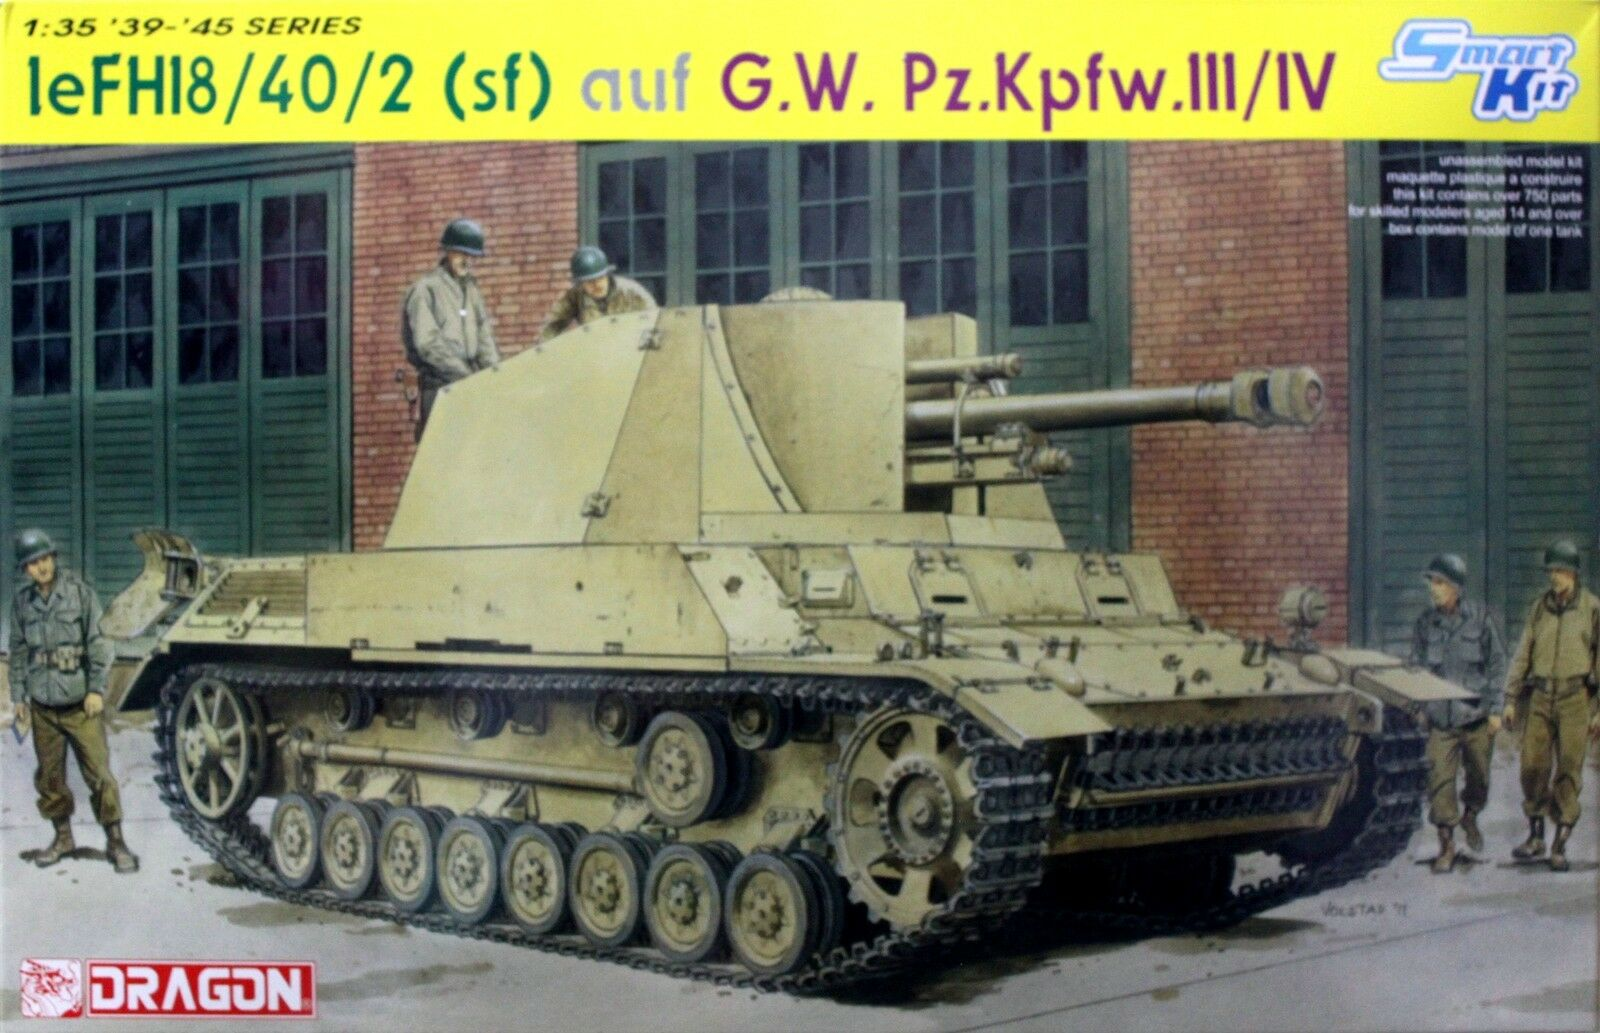 Dragon 1 35 6710 WWII German leFH18 40 2 (sf) auf G.W.Pz.Kpfw.III IV (Smart Kit)